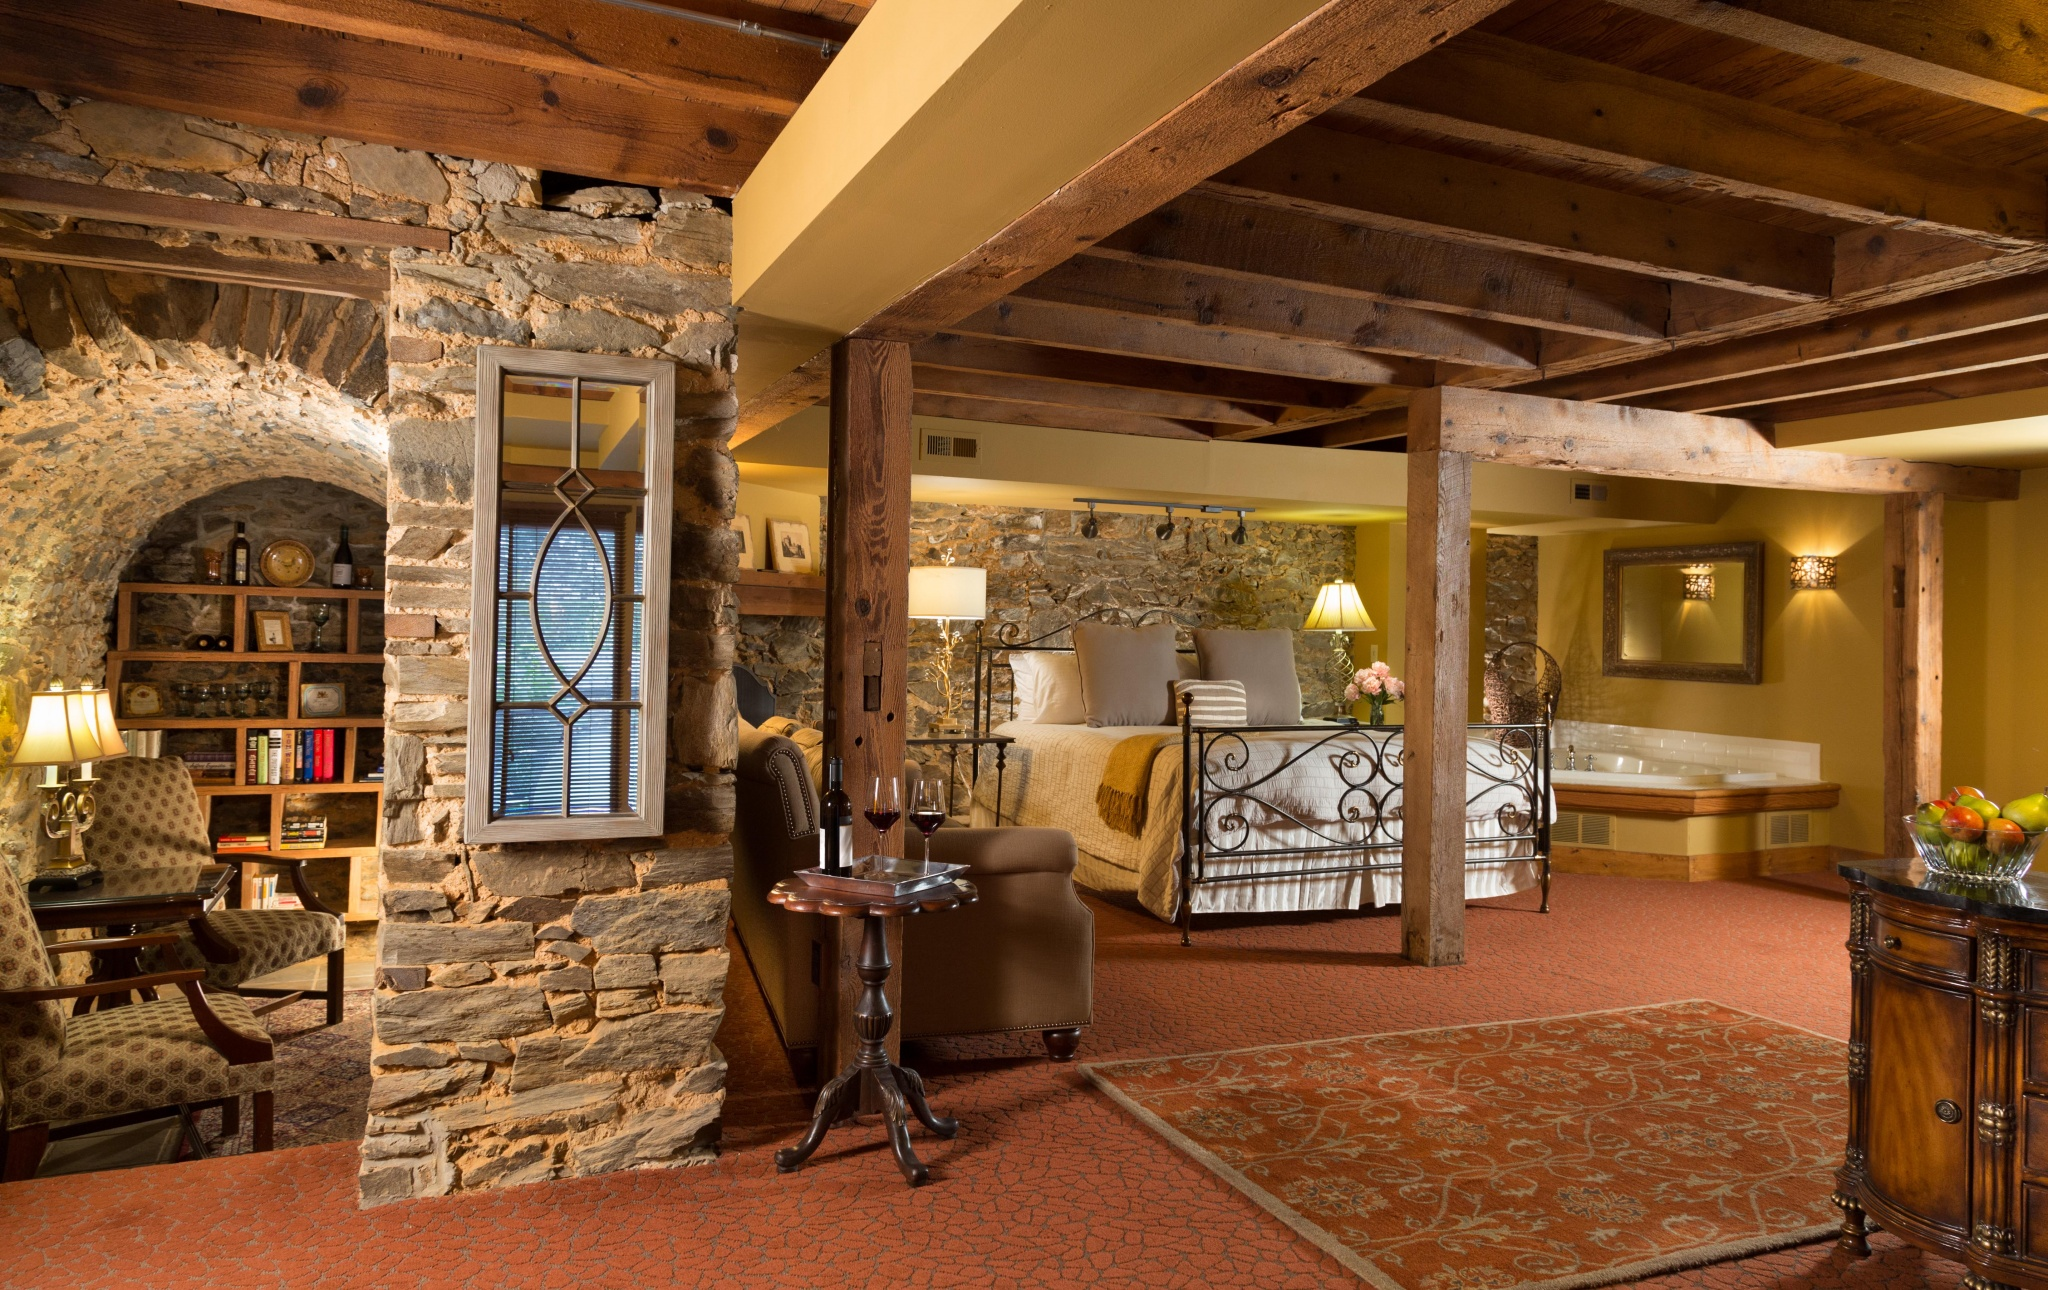 The Inn At Leola Village, A Historic Hotel of America | Leola | Whirlpool Suite